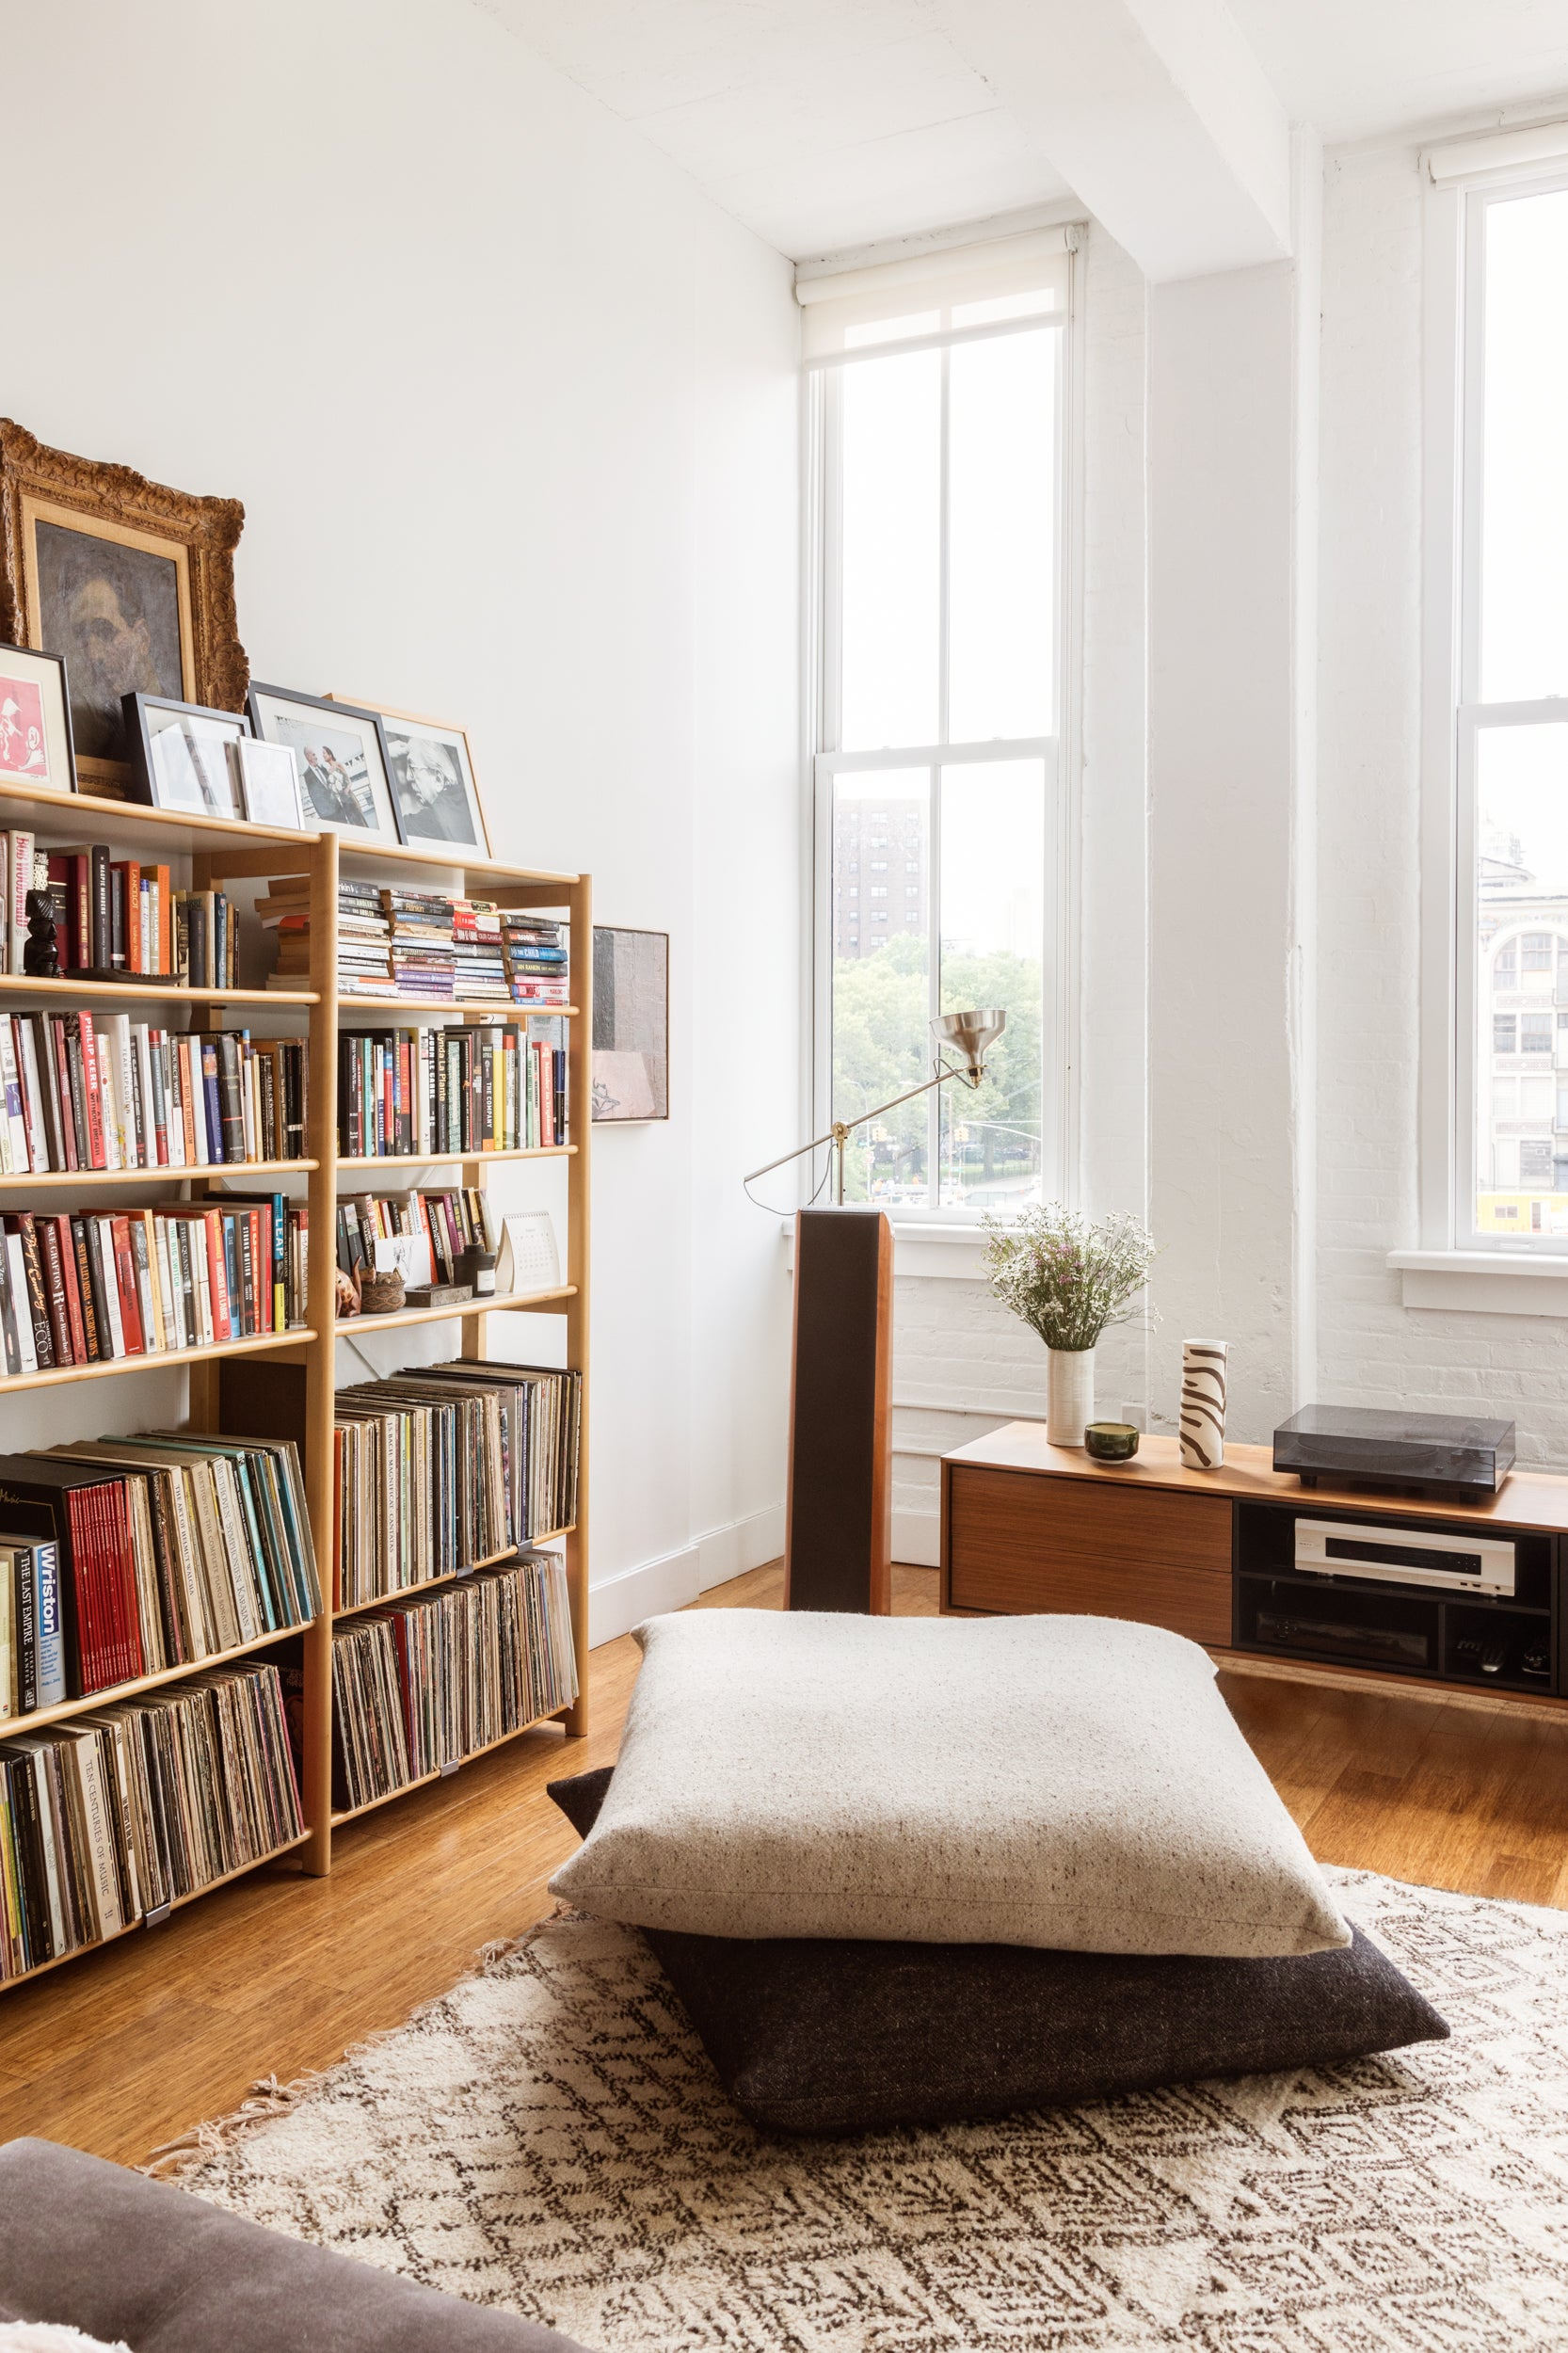 living room with bookcases and floor pillows